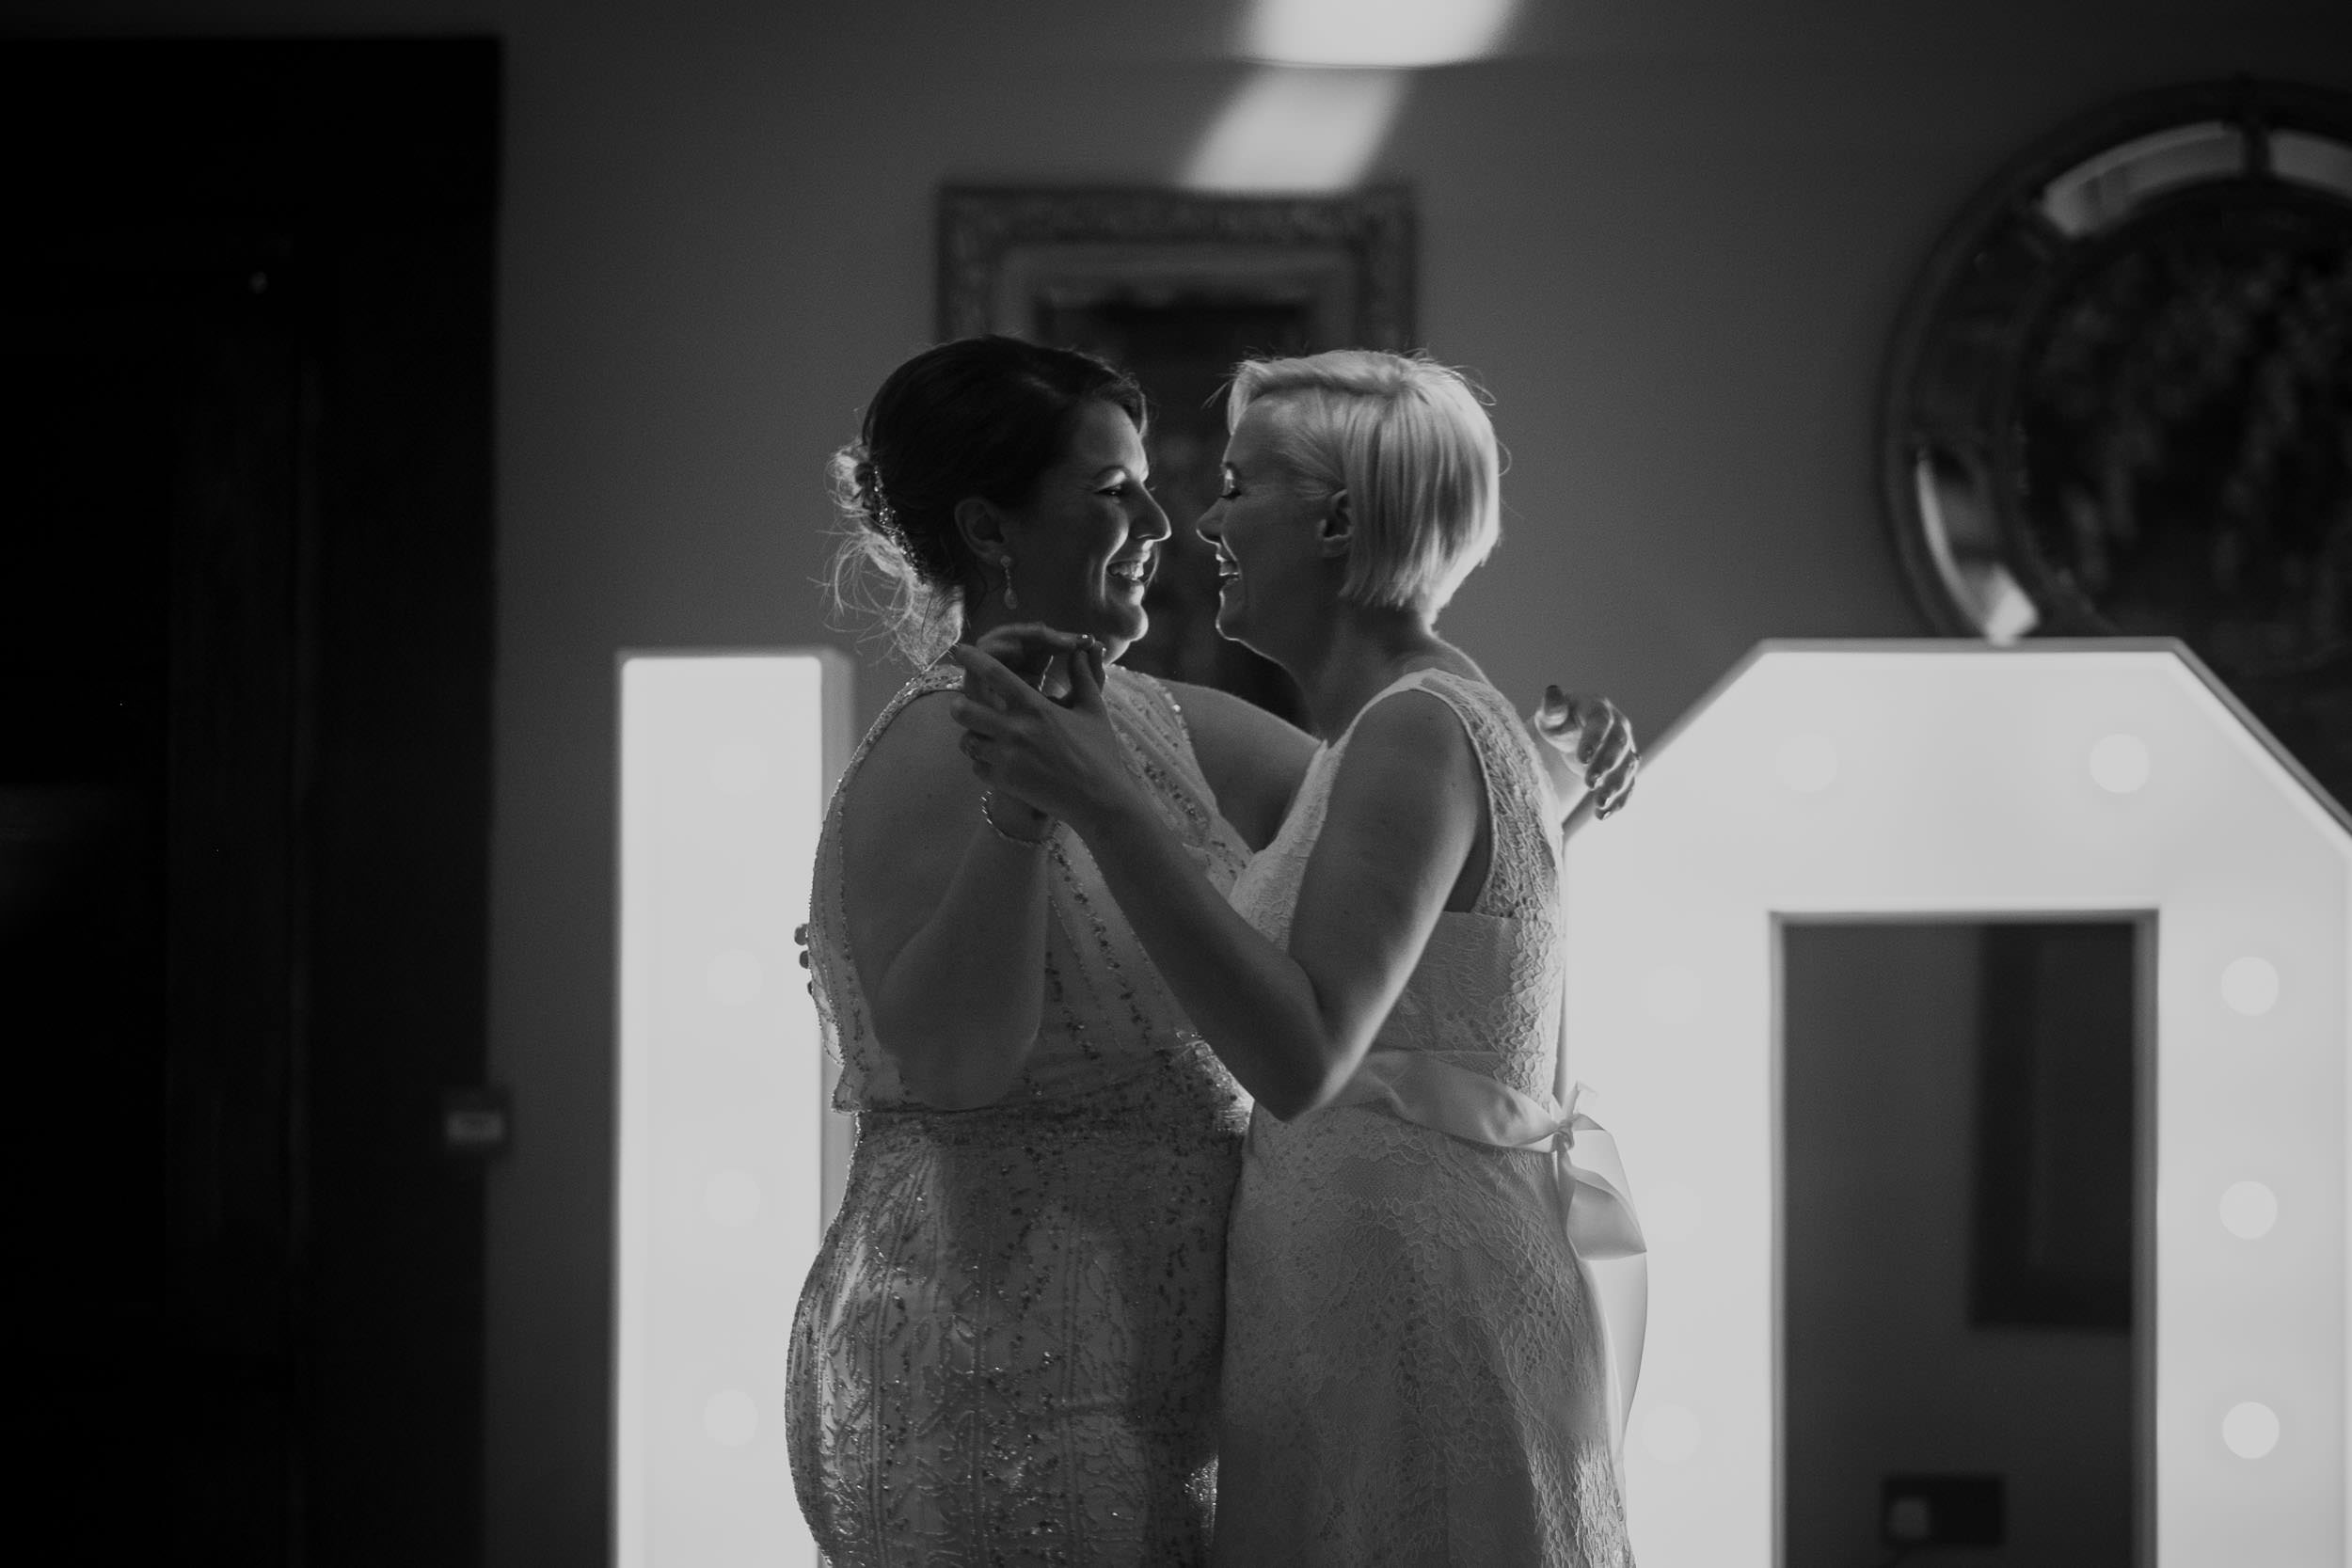 Two brides laugh during the first dance in a romantic black and white photo